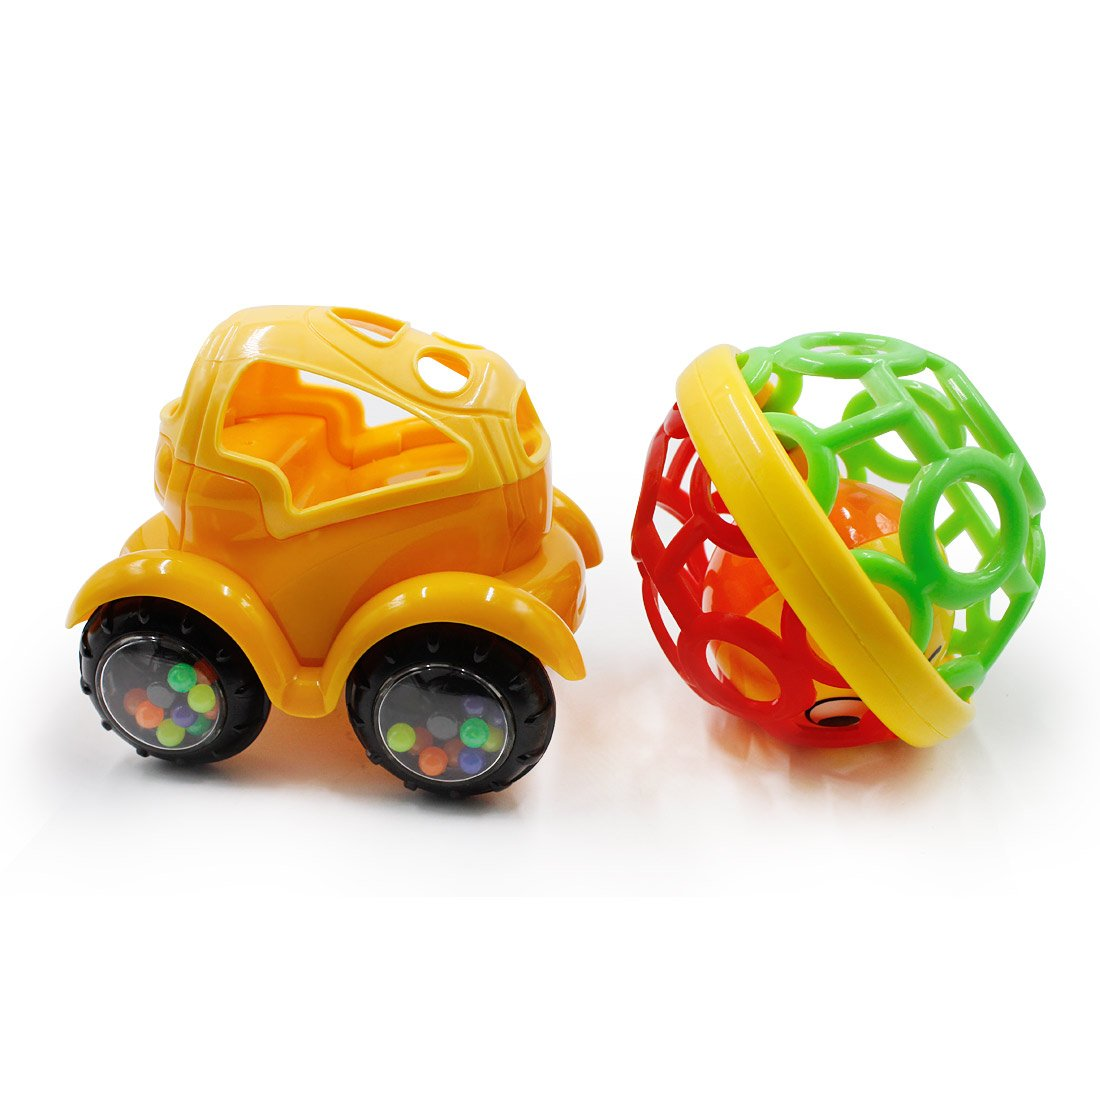 BEIHUI Baby Infant Girl Boy Children Kids Toys Rattle Rolling Play Car Ball Toddler Toys Vehicle Newborn Bendy Ball Toy For 3 Months, 2 Pack